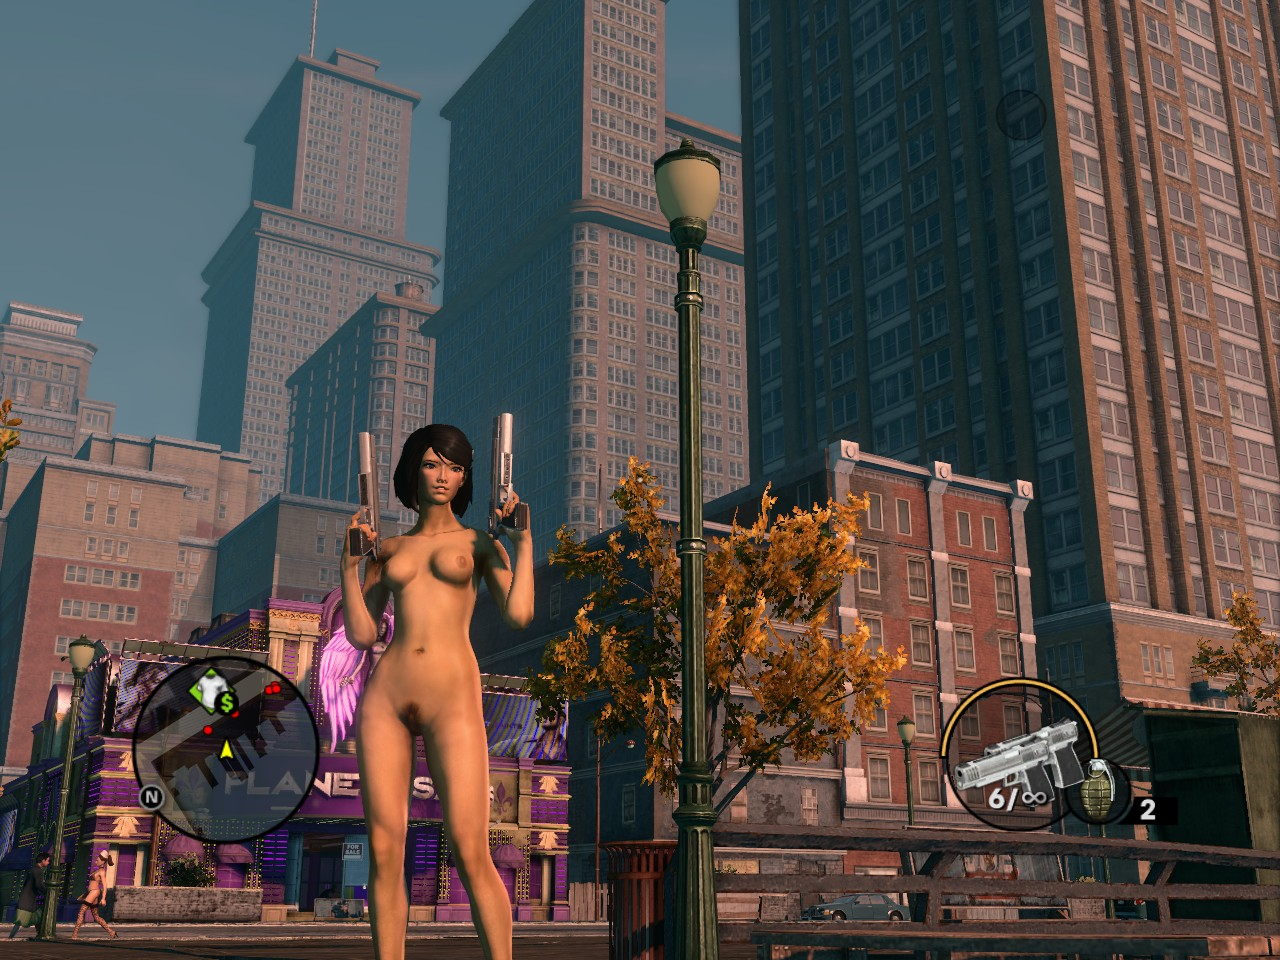 Saints row 4 nude mod download for  smut picture